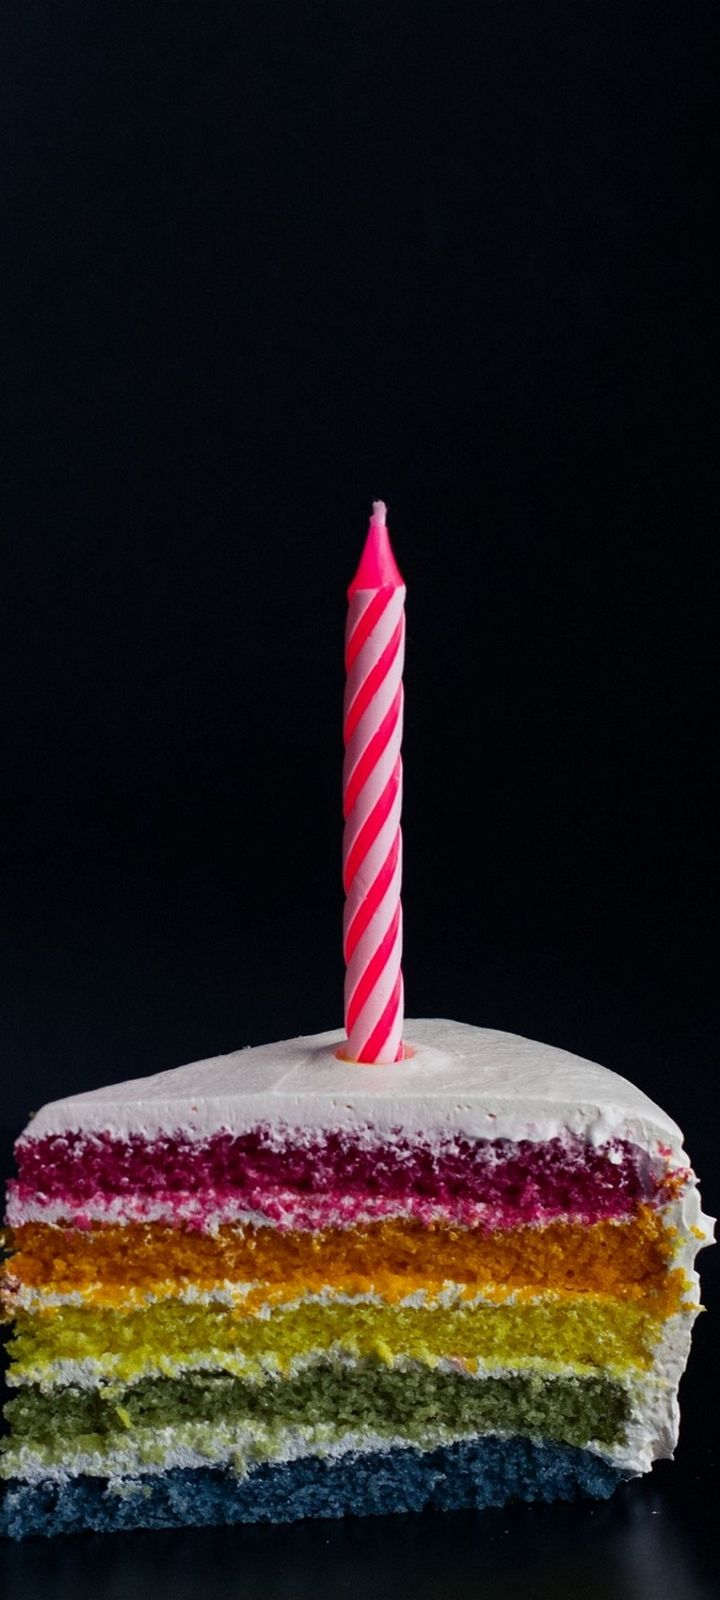 Candle Cake Food Wallpaper 720x1600